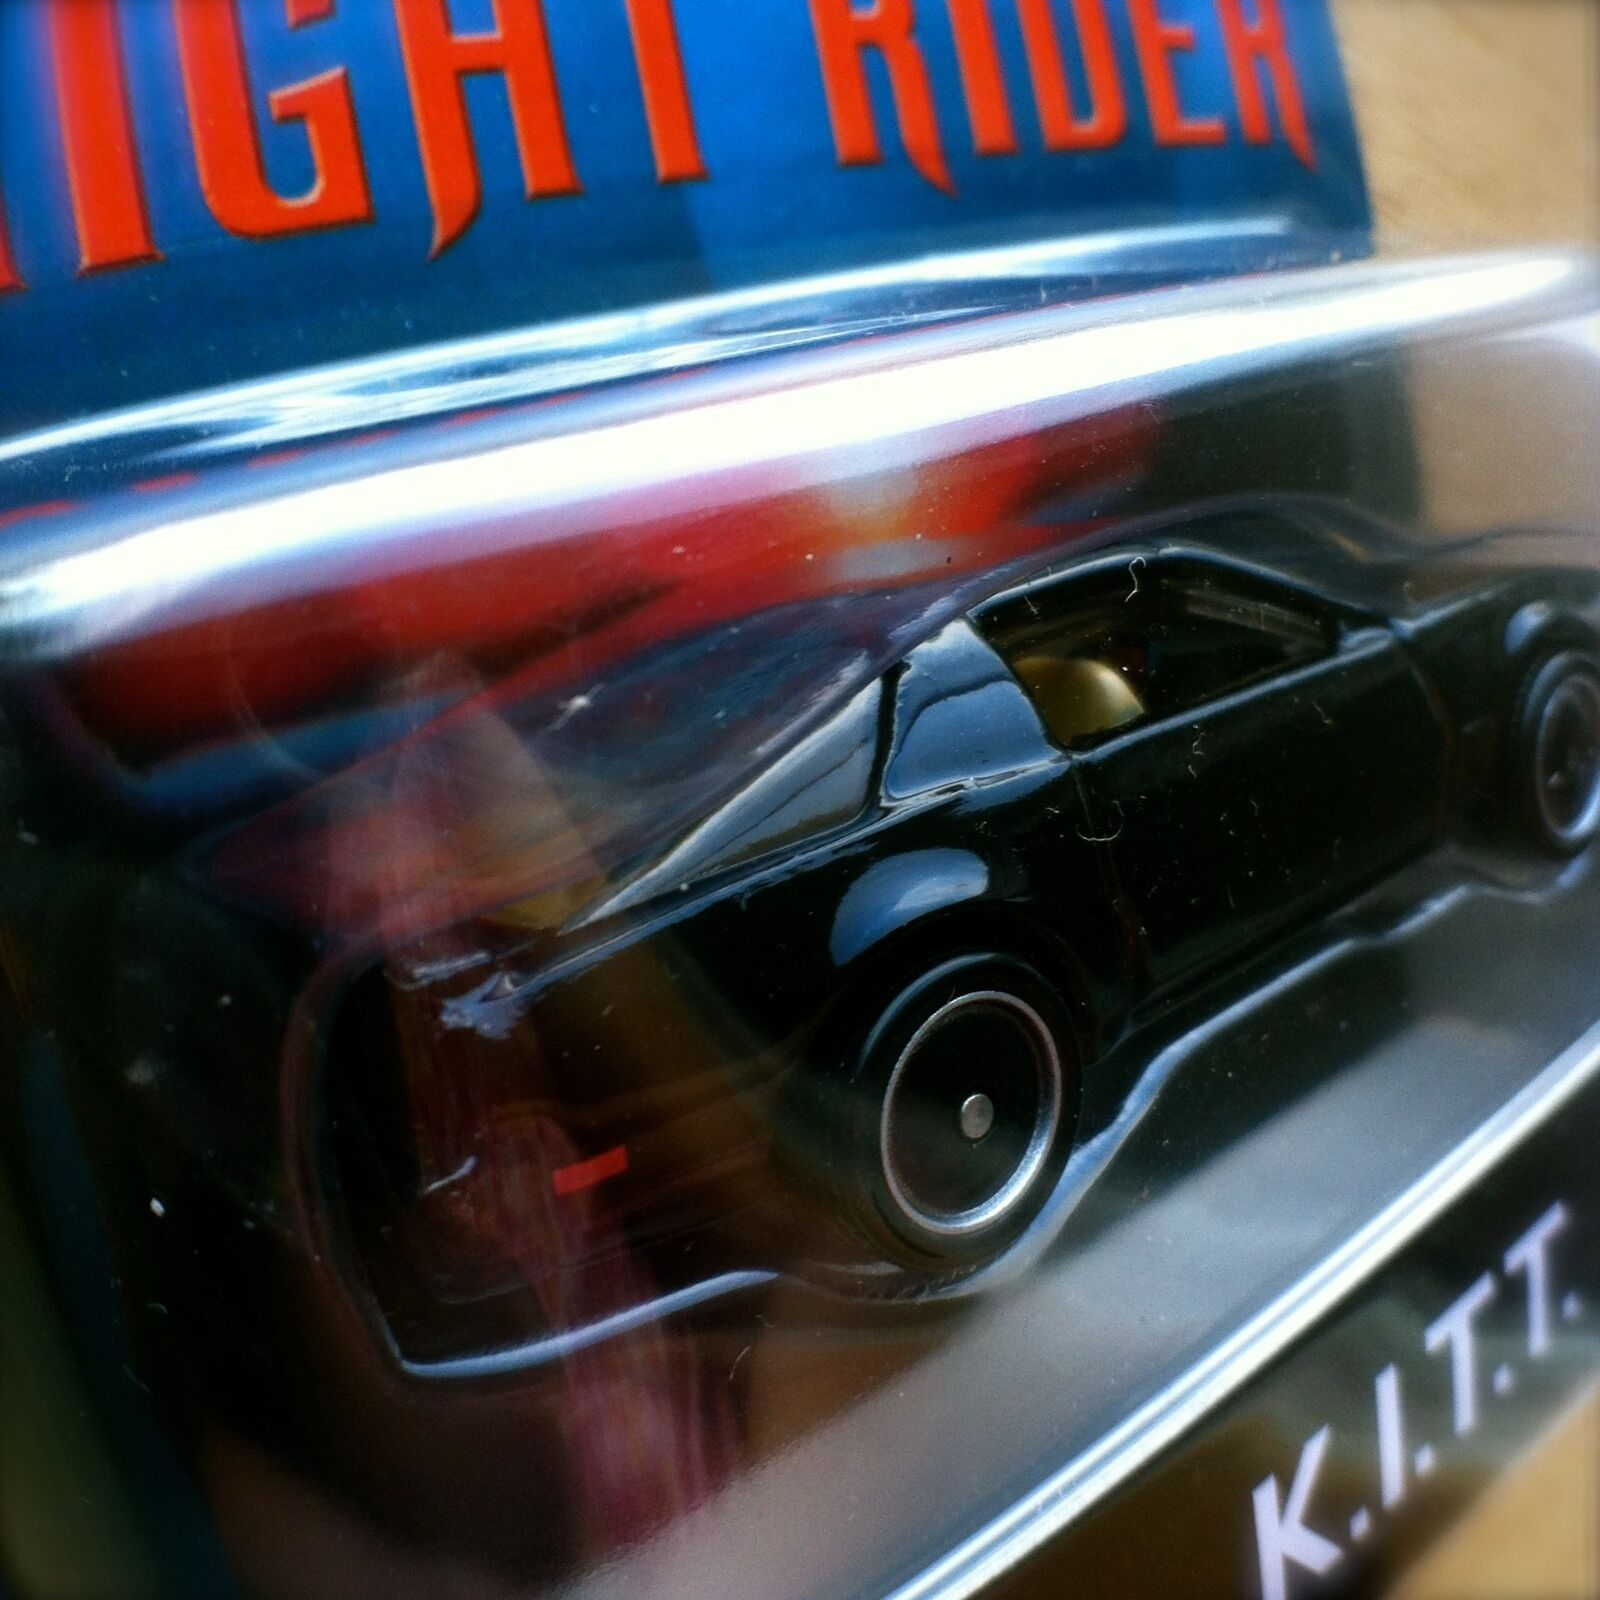 Hot Wheels KNIGHT RIDER K.I.T.T. K.I.T.T. K.I.T.T. Diecast 2013 RETRO ENTERTAINMENT KITT Mattel 7b3d58